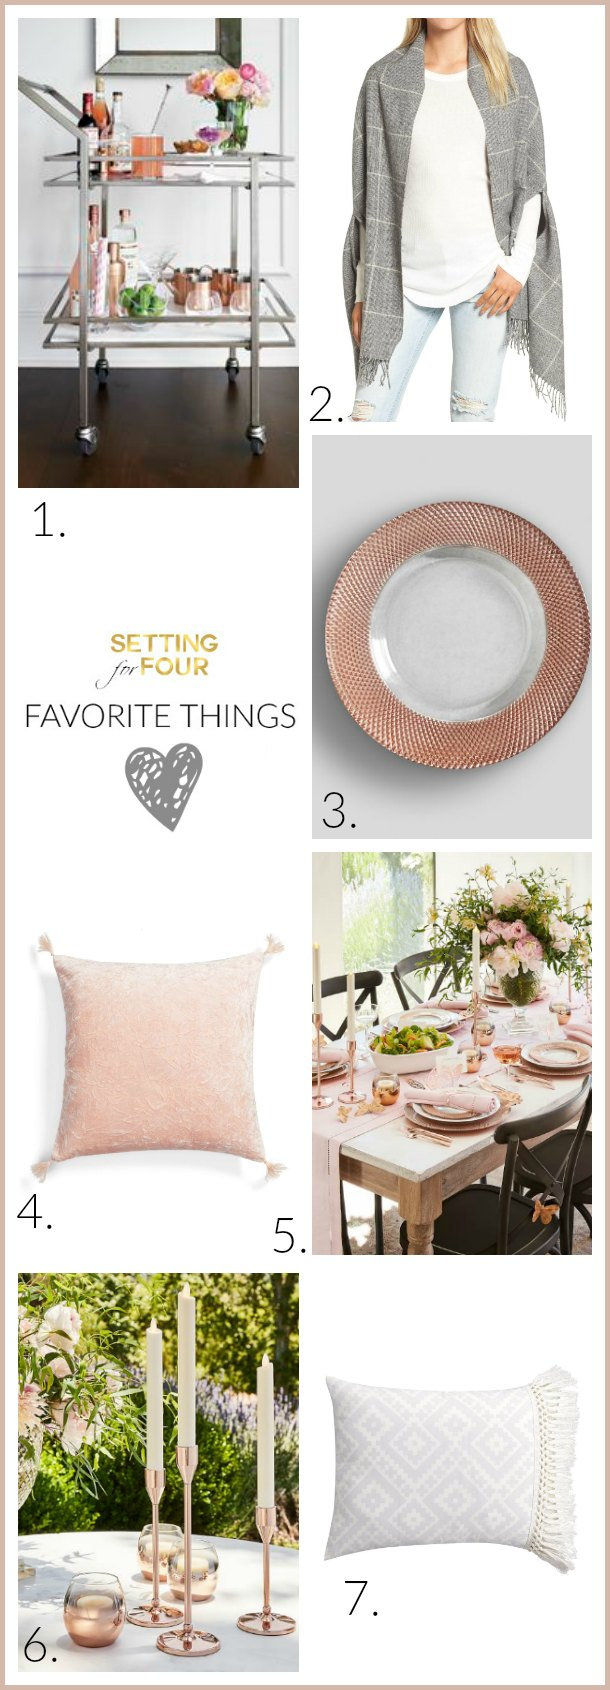 Loving all of these FAVORITE THINGS - latest collection of new market picks that caught my eye! Gorgeous Home Decorations and Fashion ideas to decorate the home and closet!